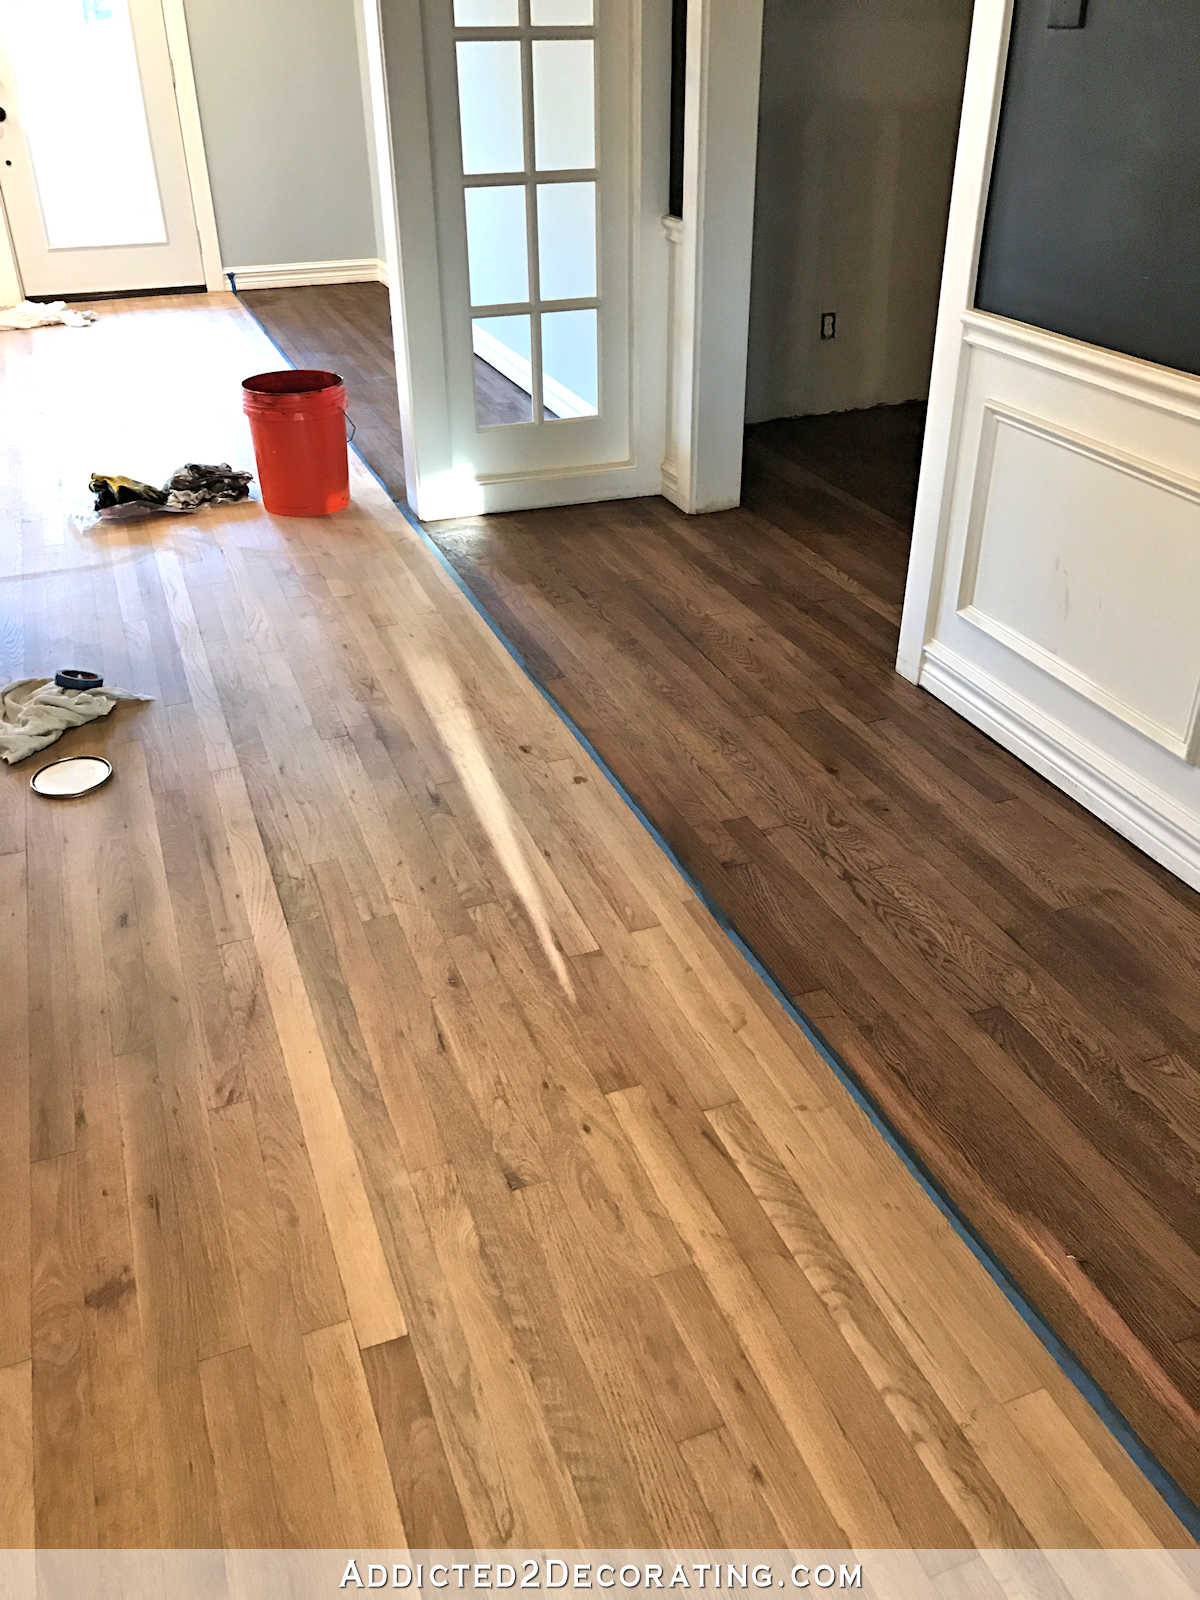 hardwood floor refinishing portland of how much to refinish wood floors adventures in staining my red oak pertaining to how much to refinish wood floors adventures in staining my red oak hardwood floors products